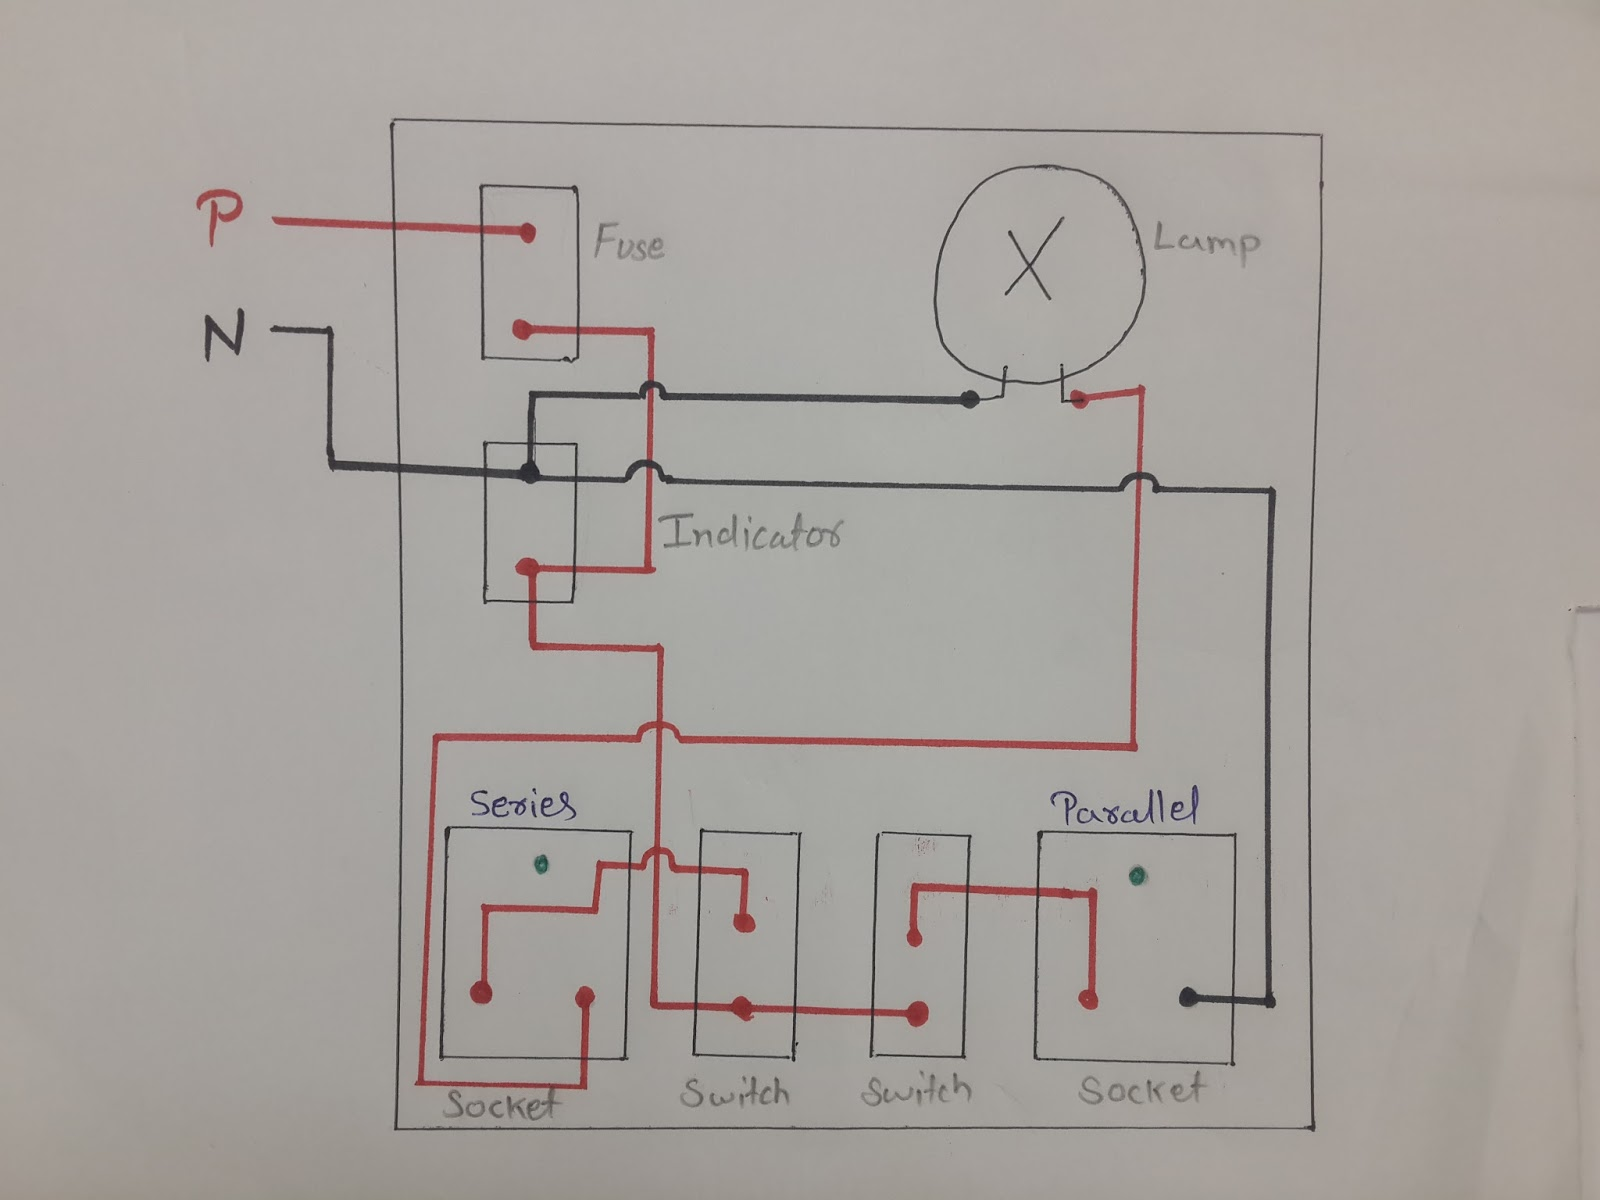 circuit diagram of series test lamp wiring diagram used deepakkumar yadav how series parallel electrical testing [ 1600 x 1200 Pixel ]